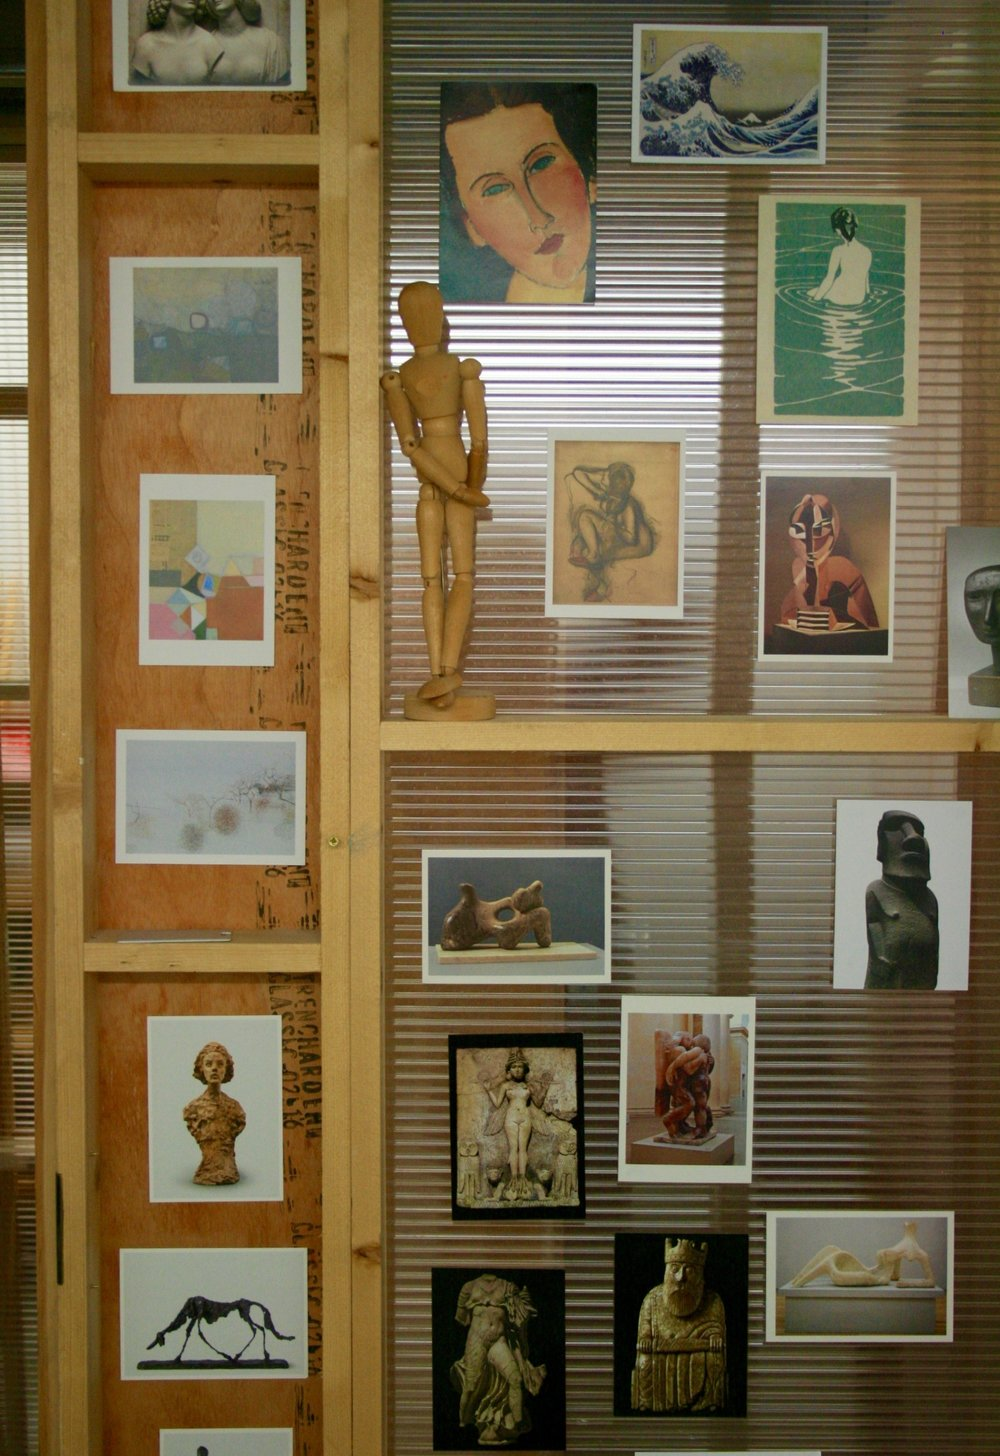 Judith Pollock's wall of inspiration